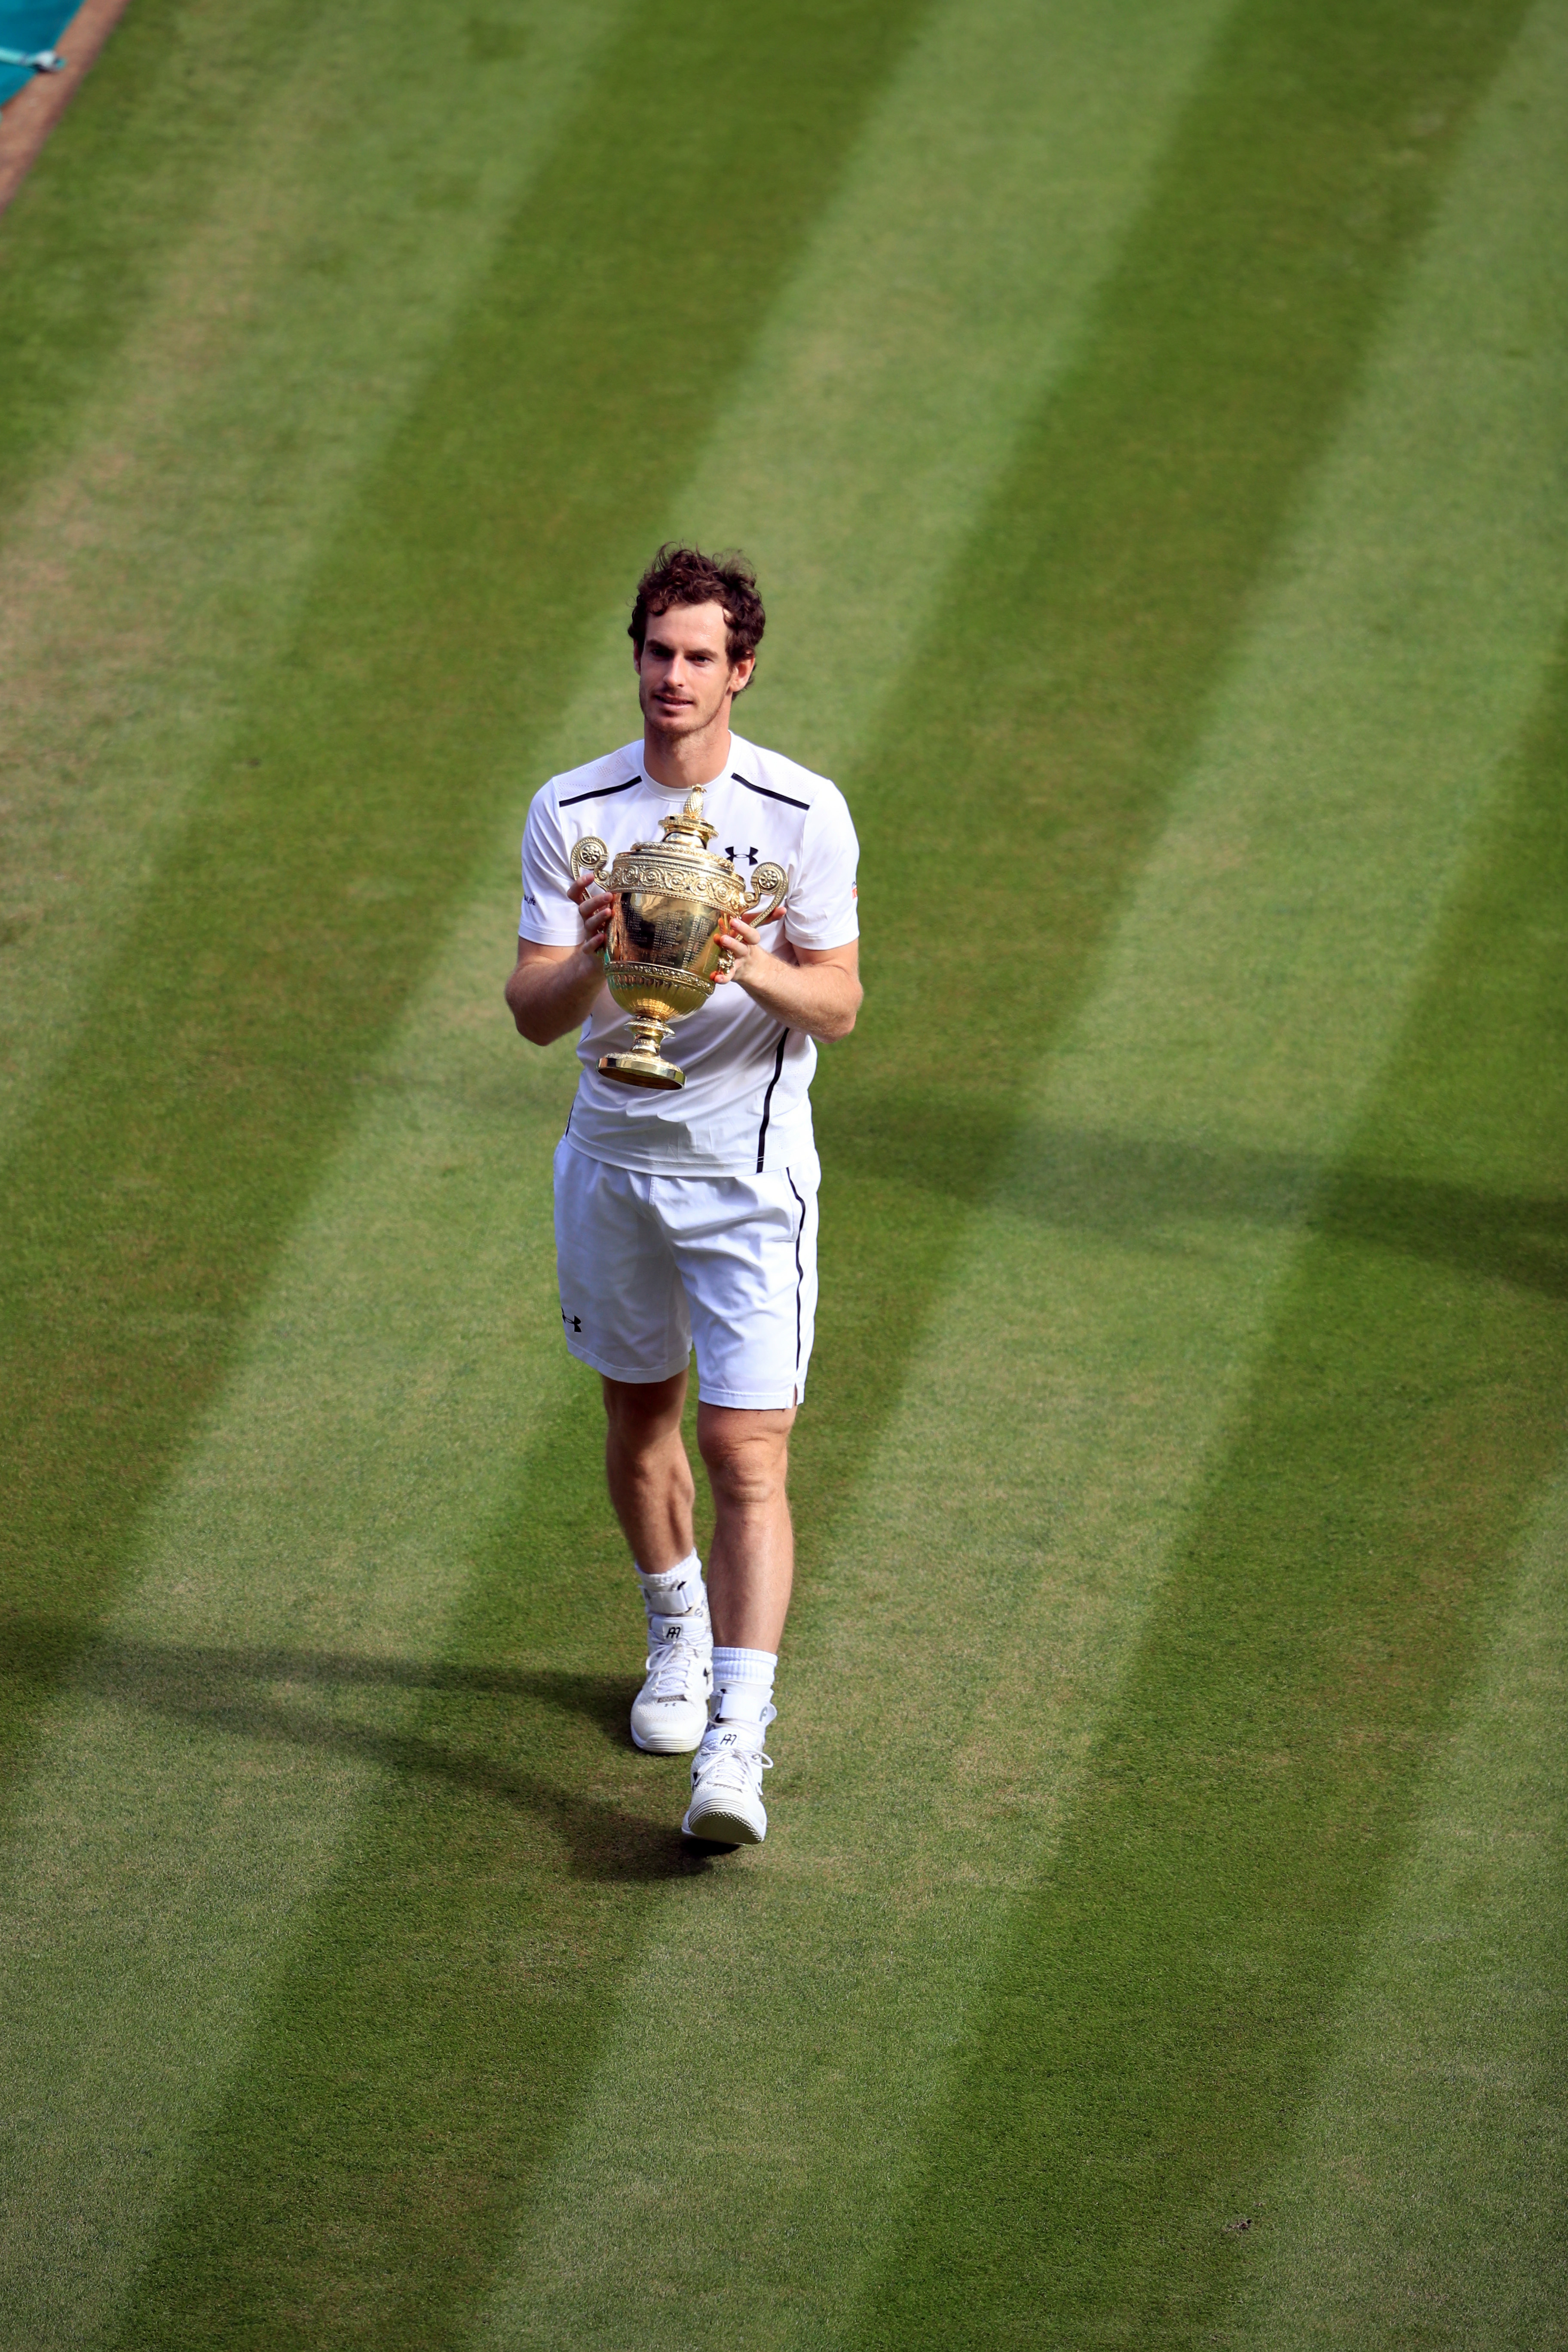 Andy Murray of Britain holds his trophy after beating Milos Raonic of Canada in the men's singles final on day fourteen of the Wimbledon Tennis Championships in London, Sunday, July 10, 2016. (John Walton/Pool Photo via AP)